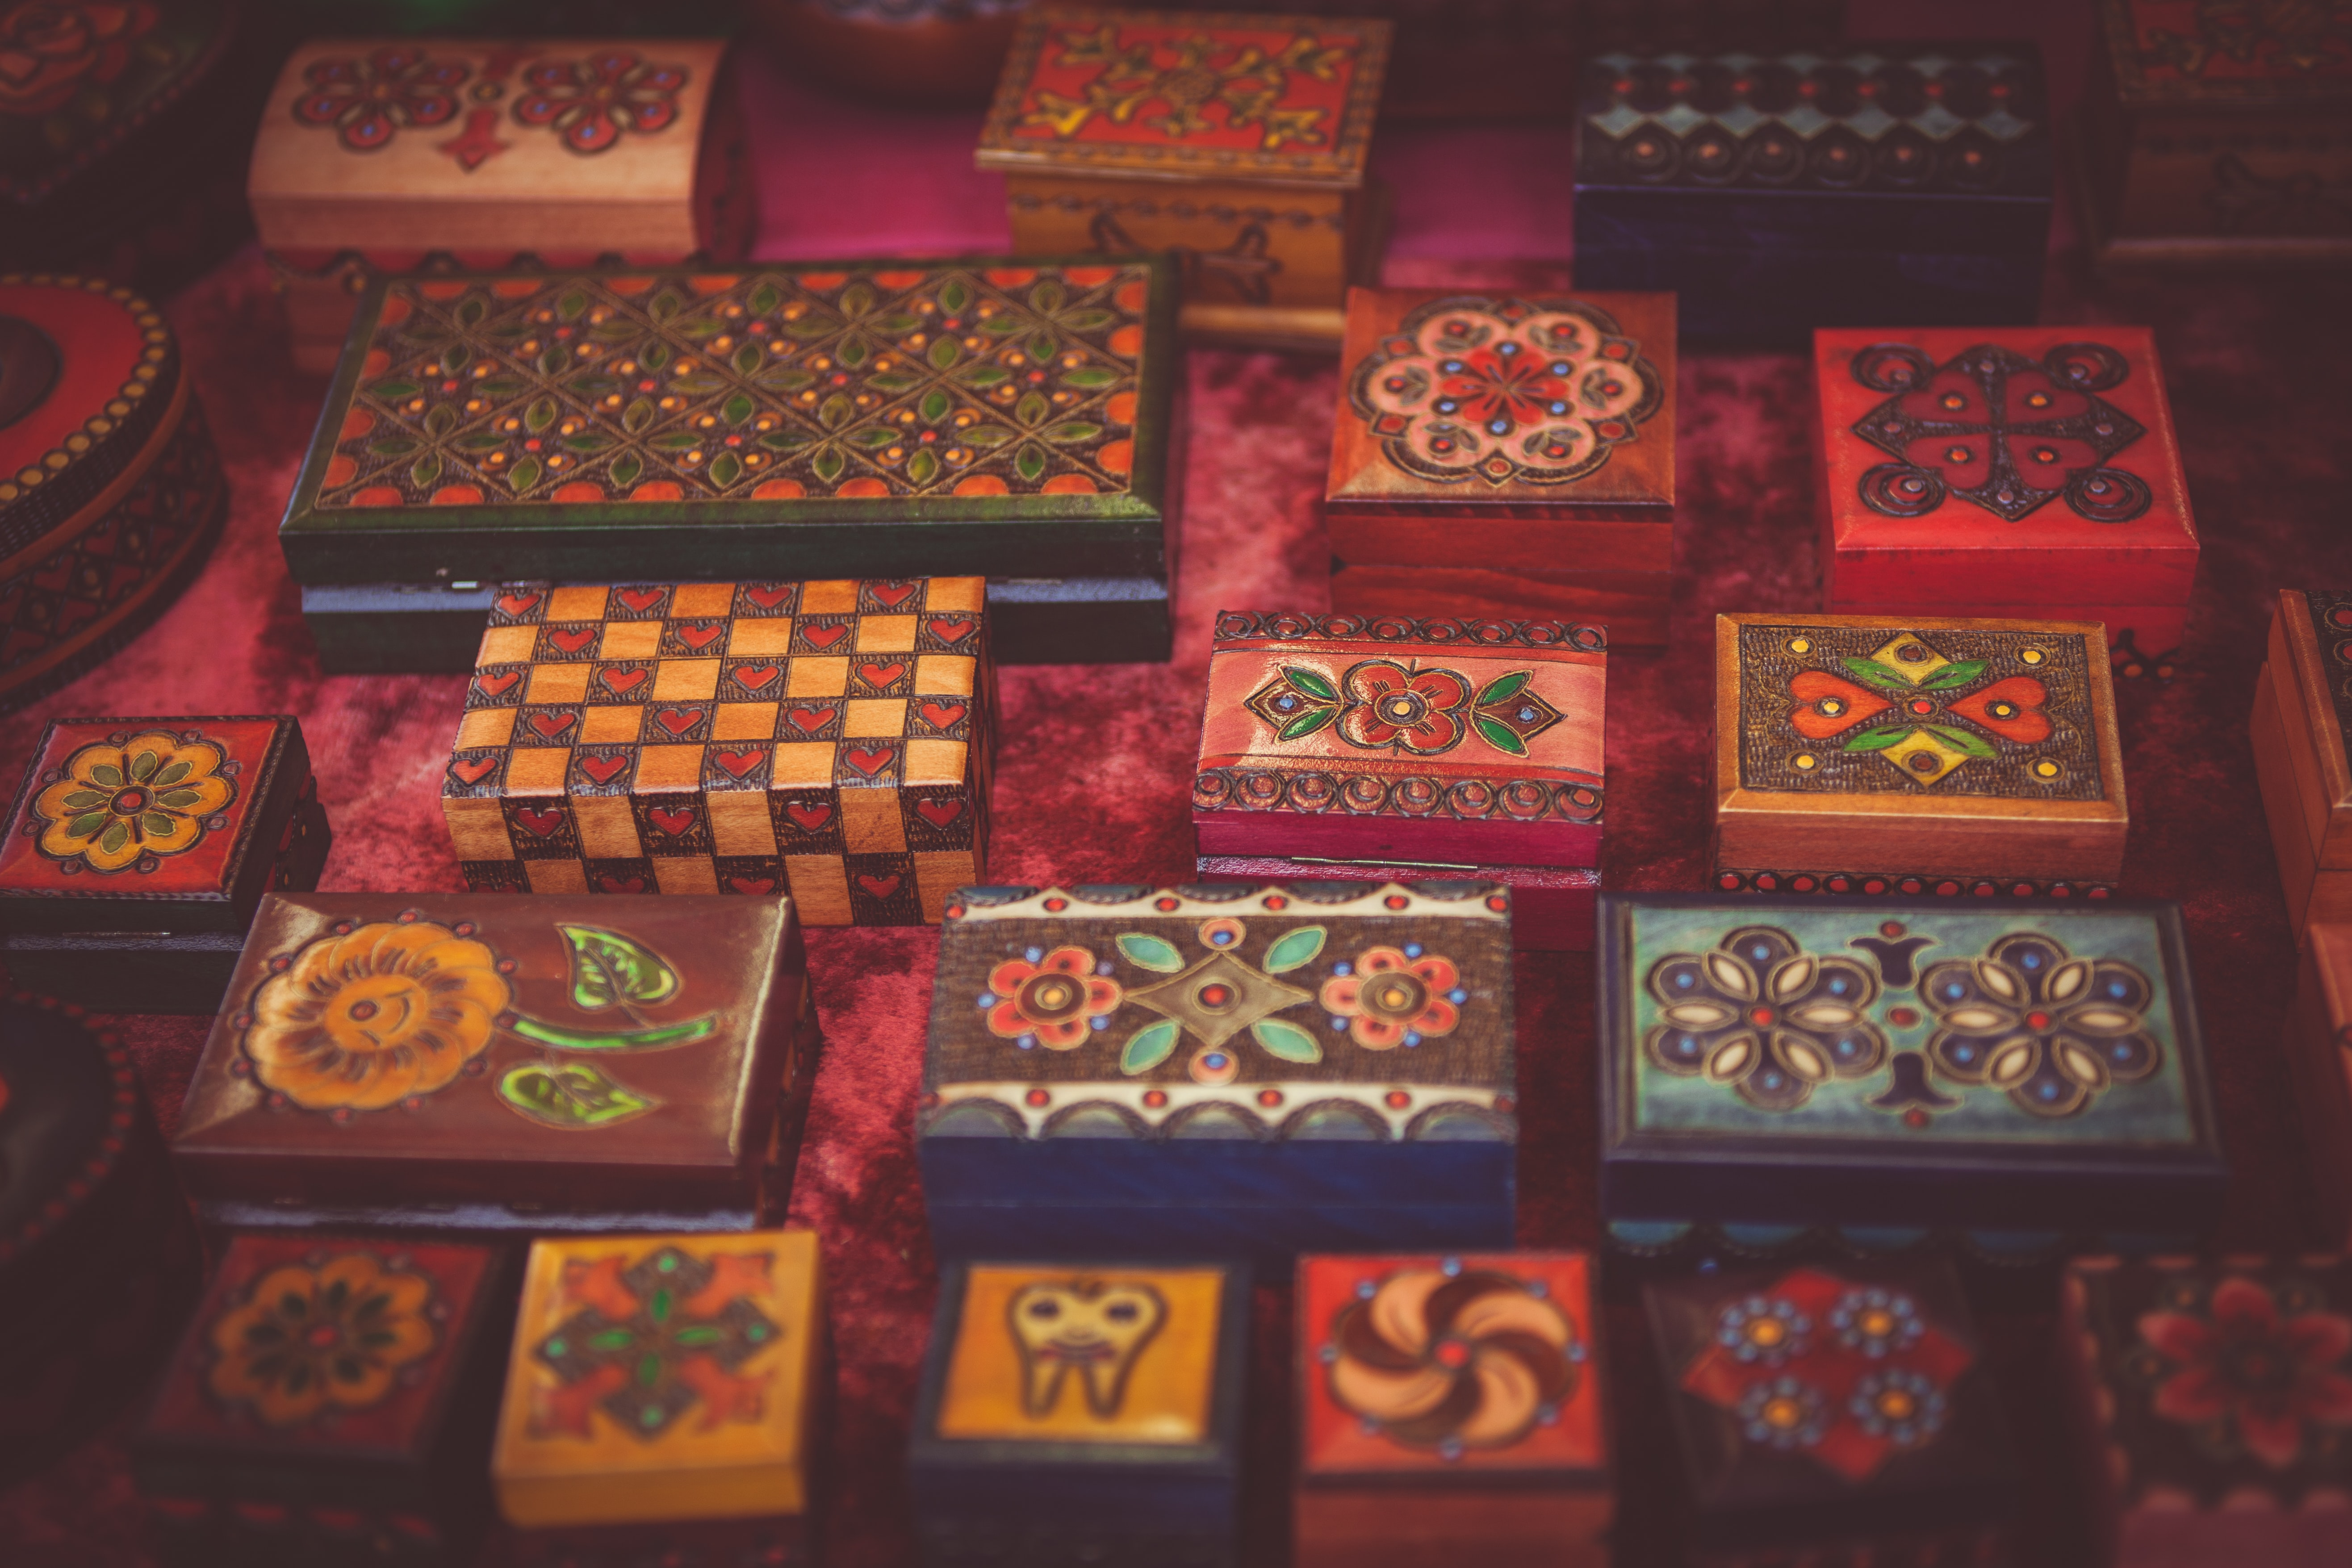 Assorted woodwork boxes collection with varied floral art designs on red fabric surface in Cambridge